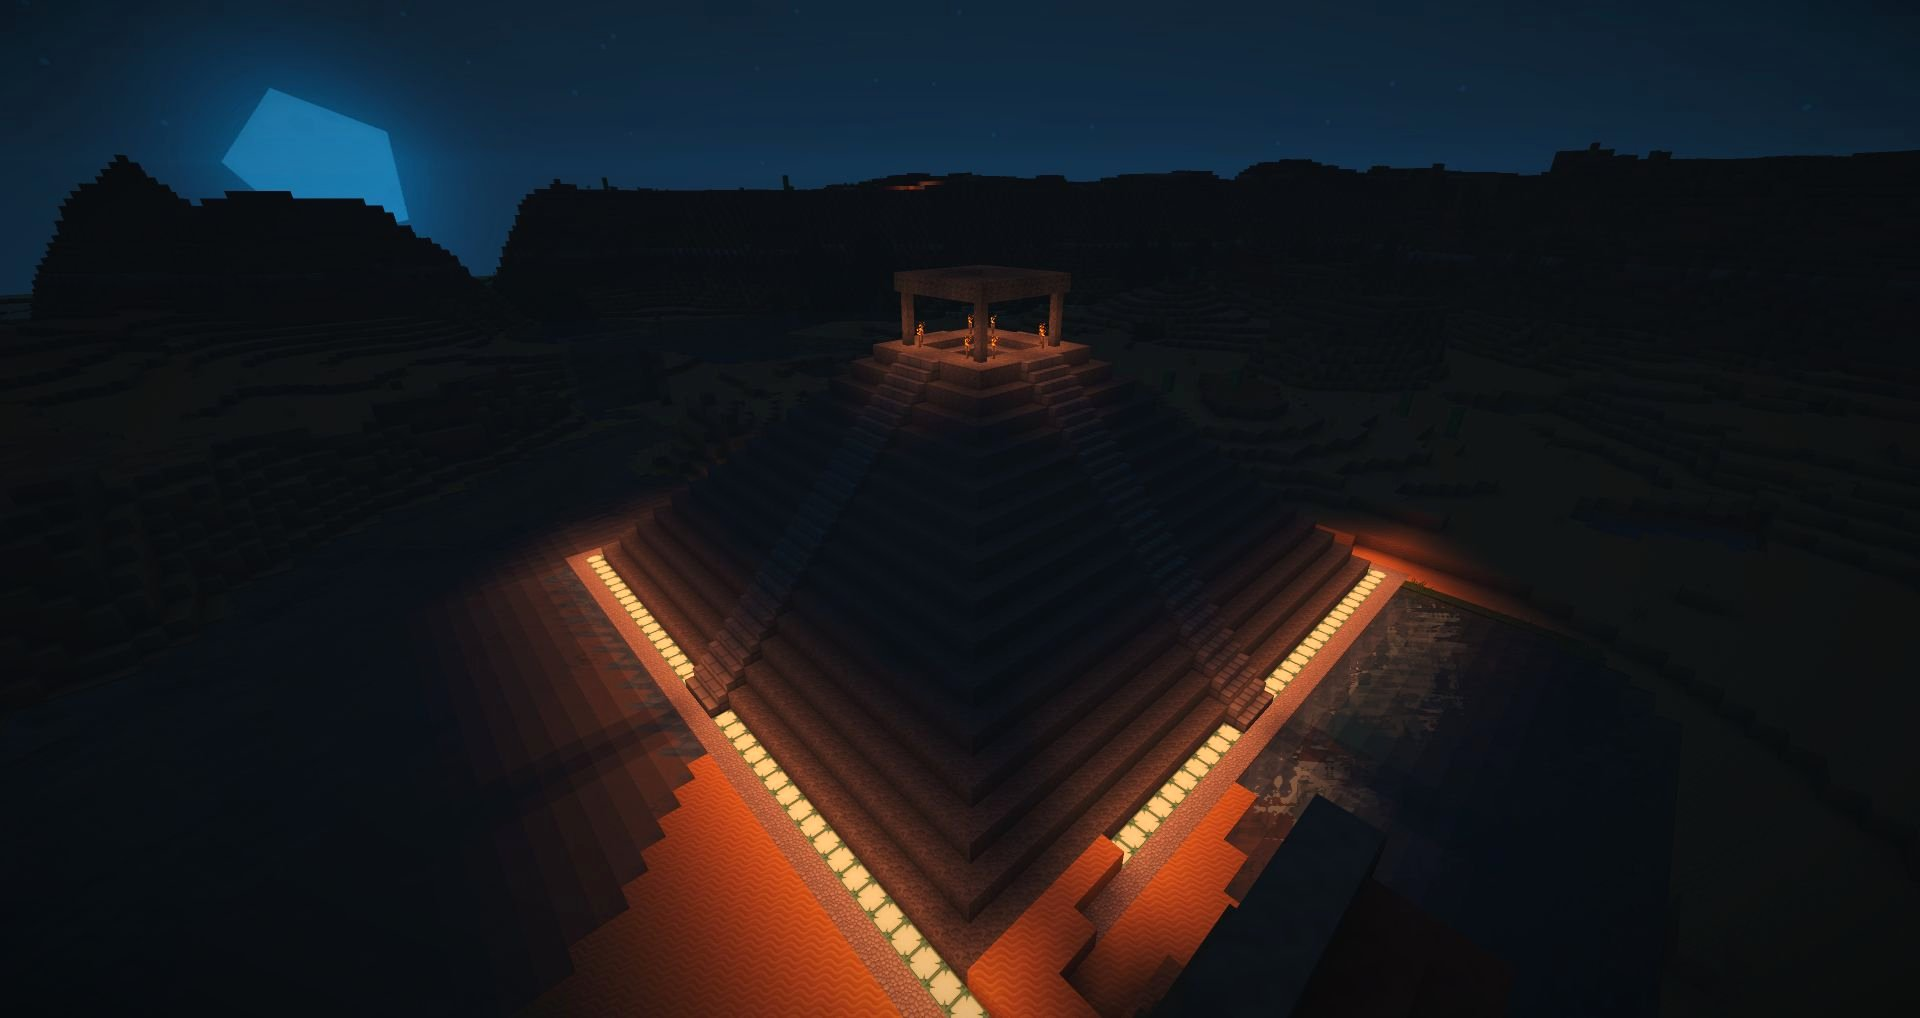 Mayan Temple after dark